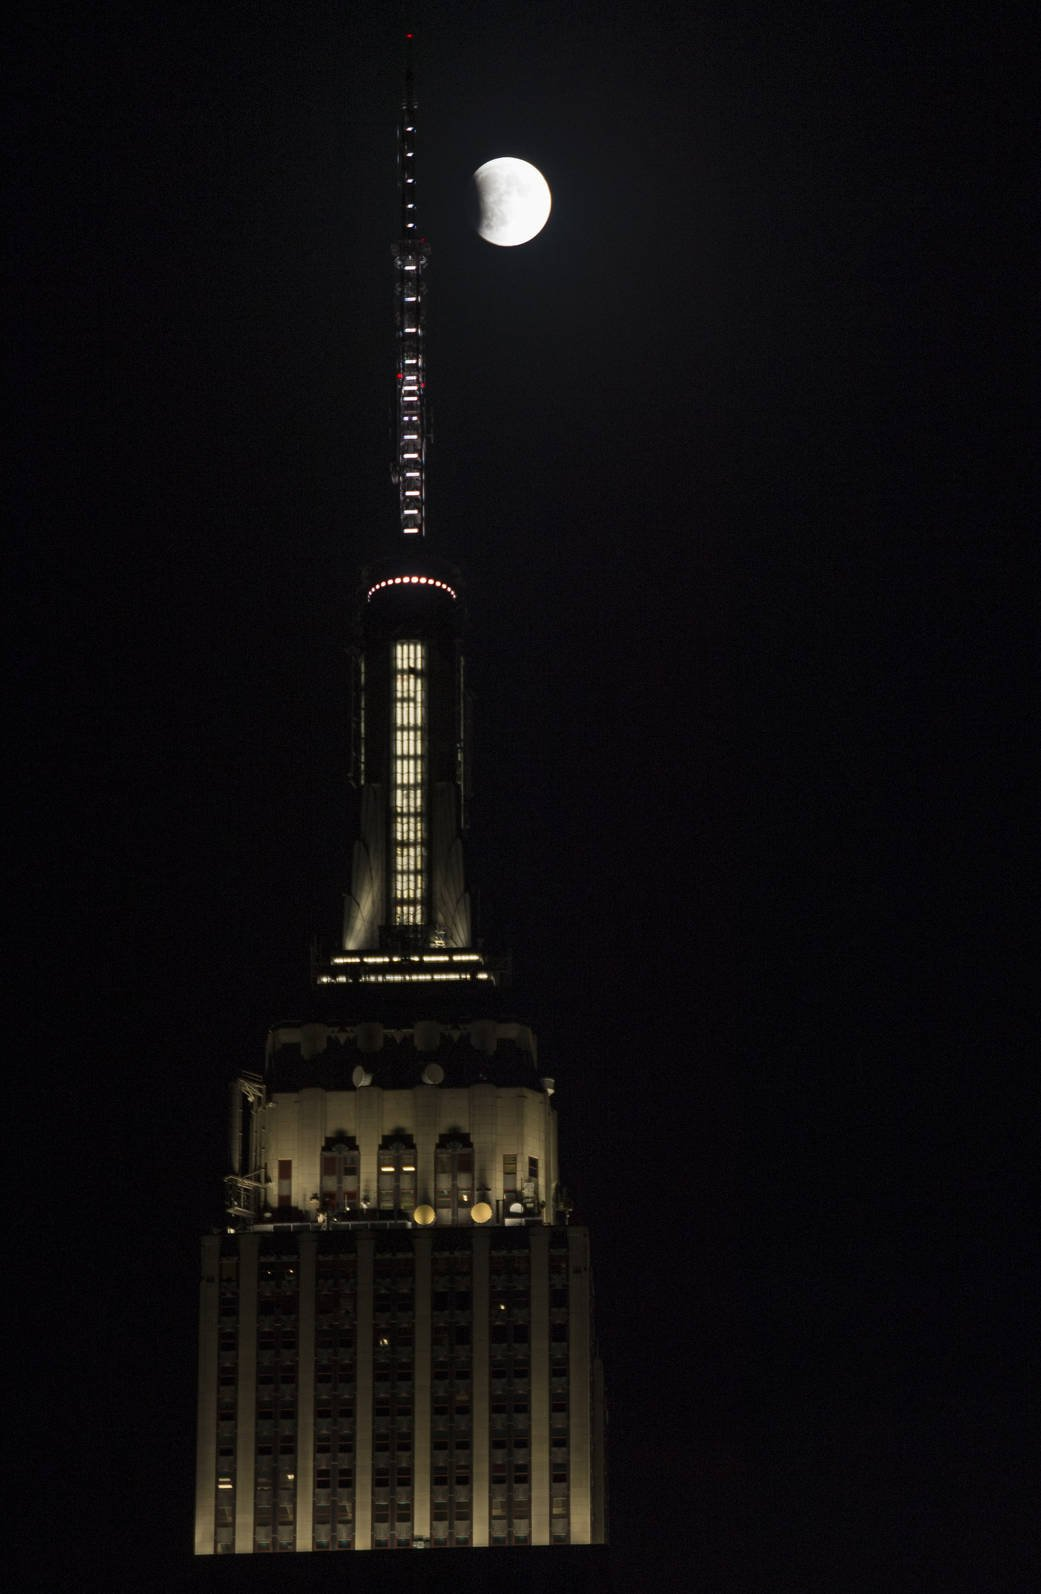 A perigee full moon, or supermoon, is seen next to the Empire State Building at the beginning of a total lunar eclipse, Sunday, Sept. 27, 2015 in New York City. The combination of a supermoon and total lunar eclipse last occurred in 1982 and will not happen again until 2033. Photo Credit: (NASA/Joel Kowsky)